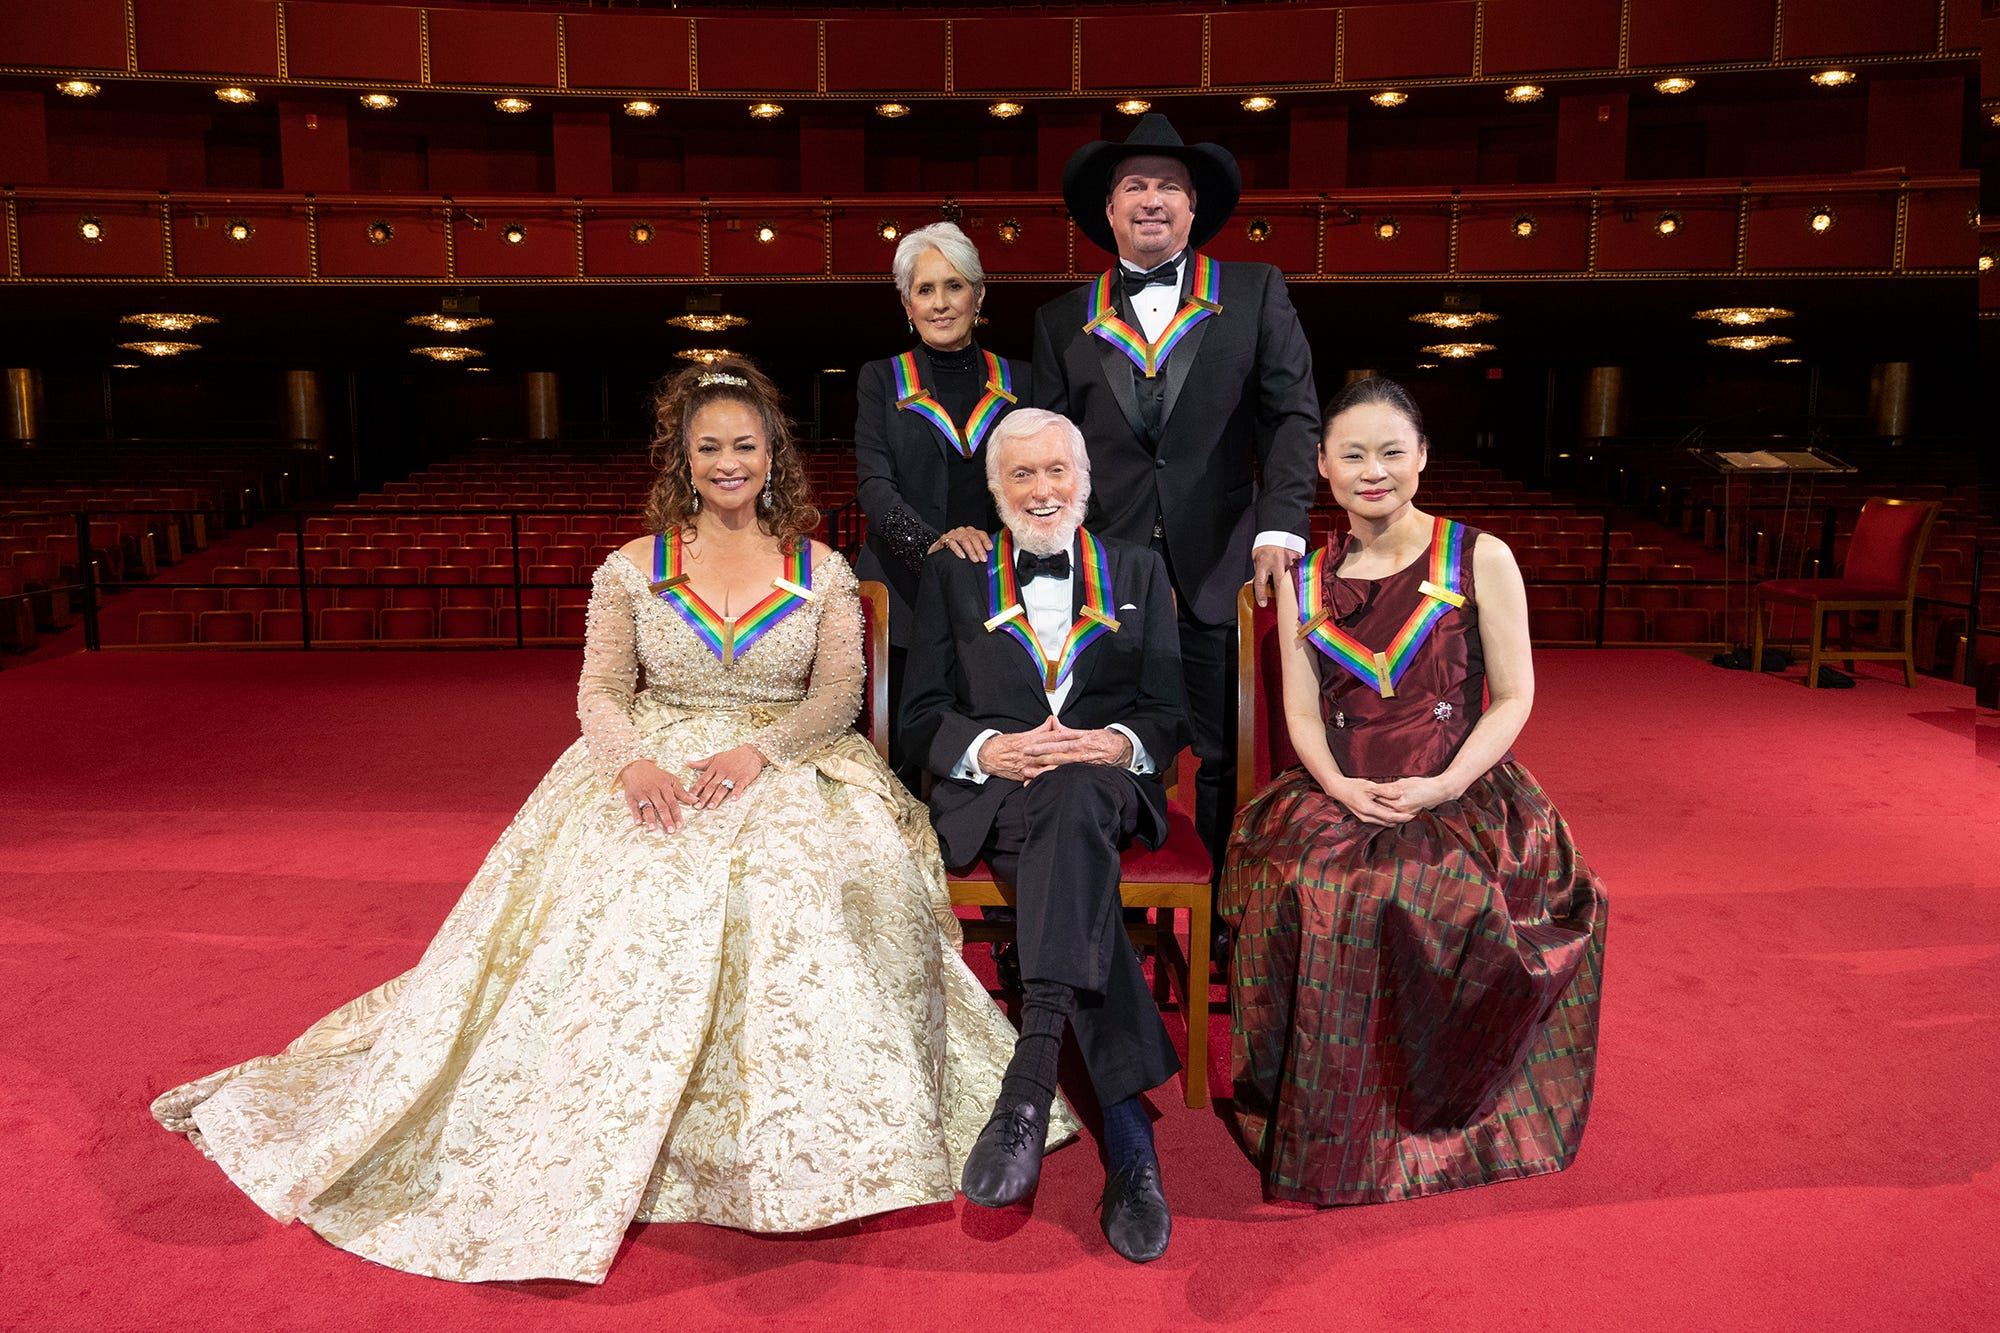 Kennedy Center Honors: An emotional Garth Brooks, Julie Andrews  tribute to Dick Van Dyke, more